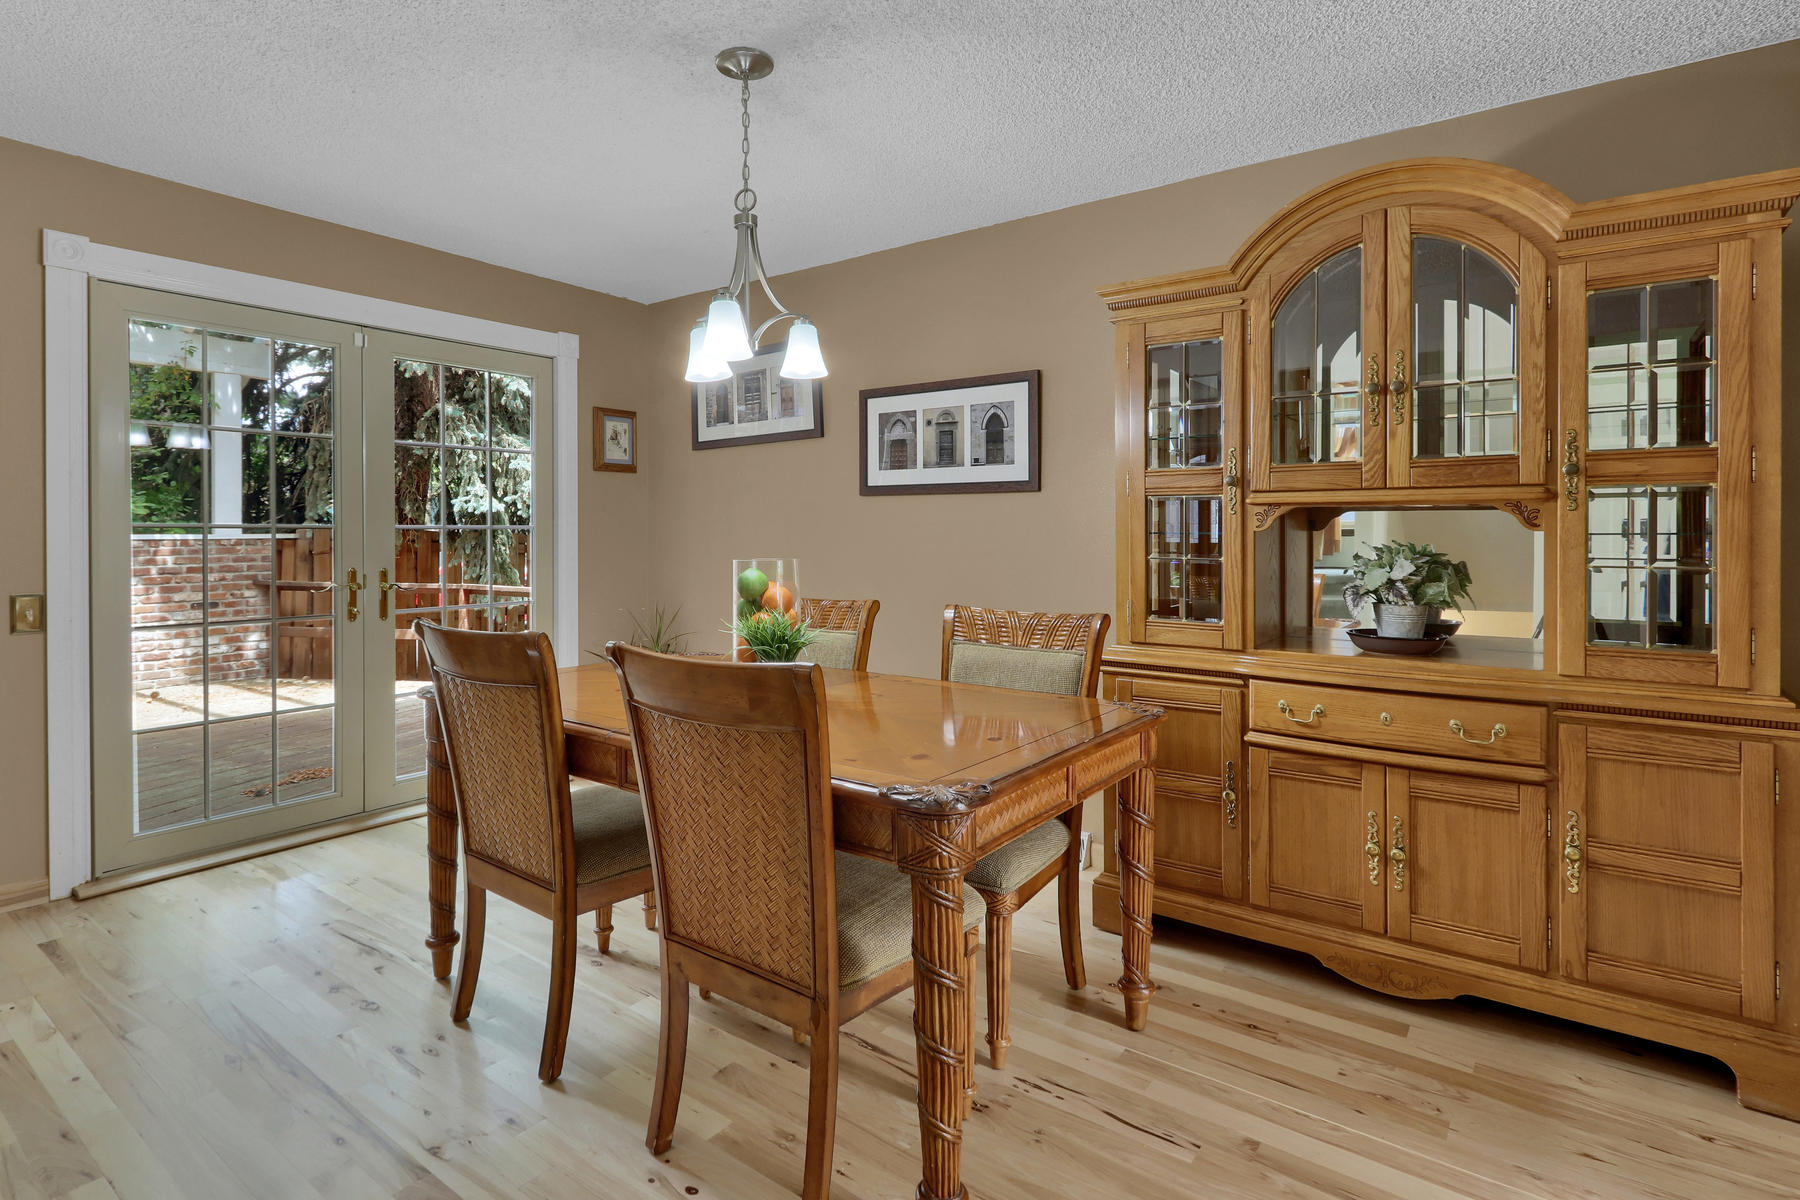 8490 Independence Way Arvada-007-012-Dining Room-MLS_Size.jpg